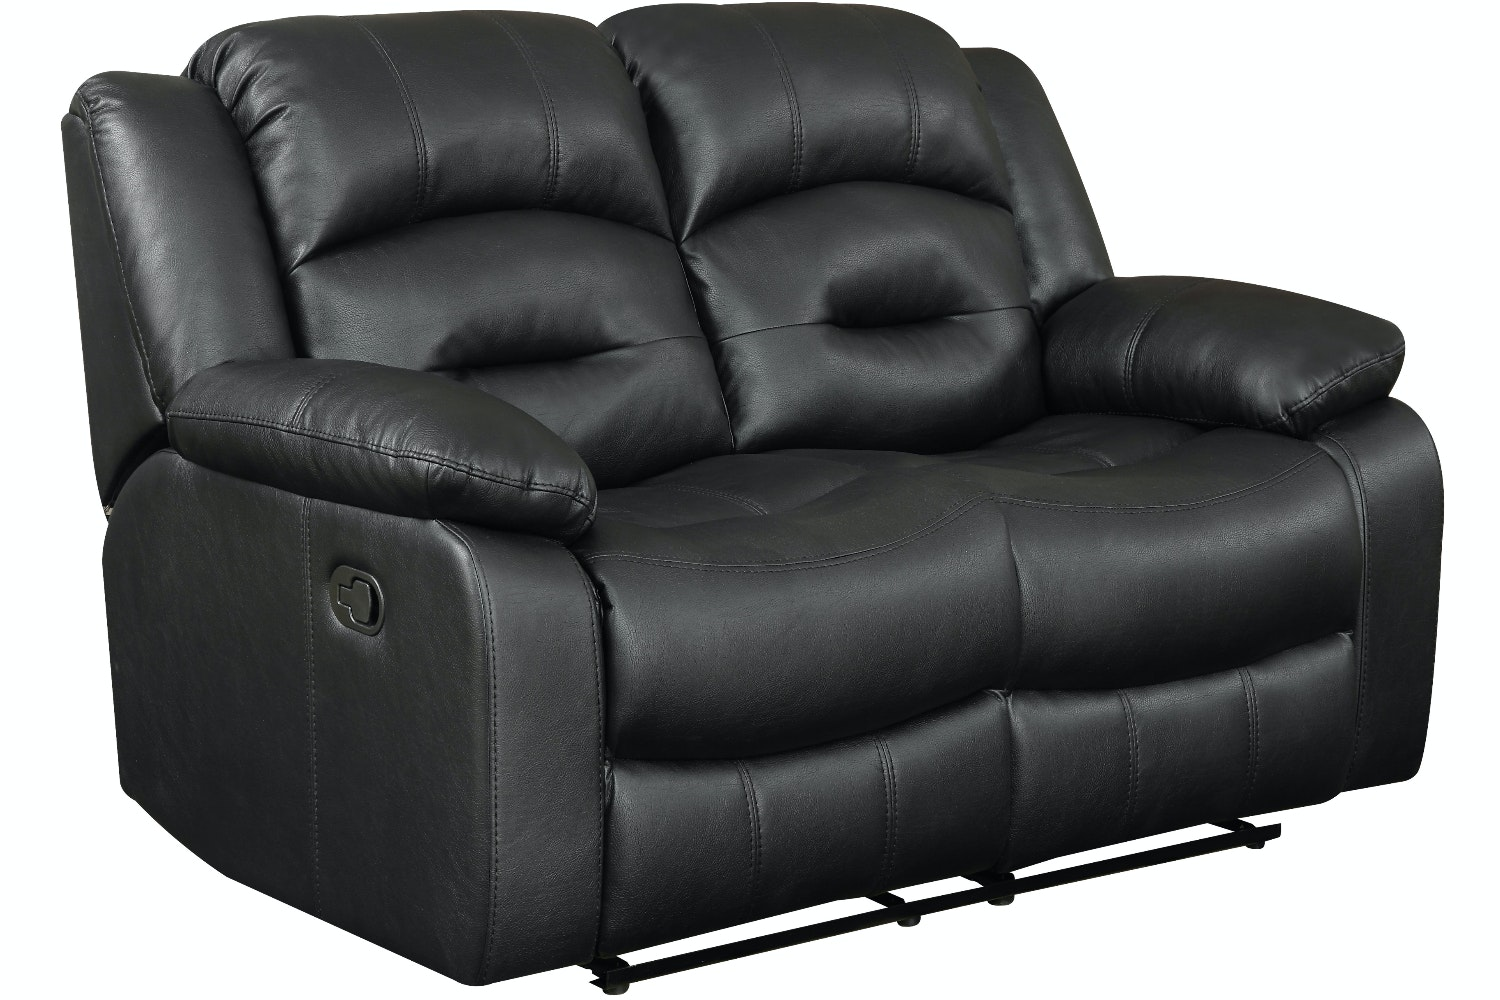 Hunter 2 Seater Recliner Sofa | Black